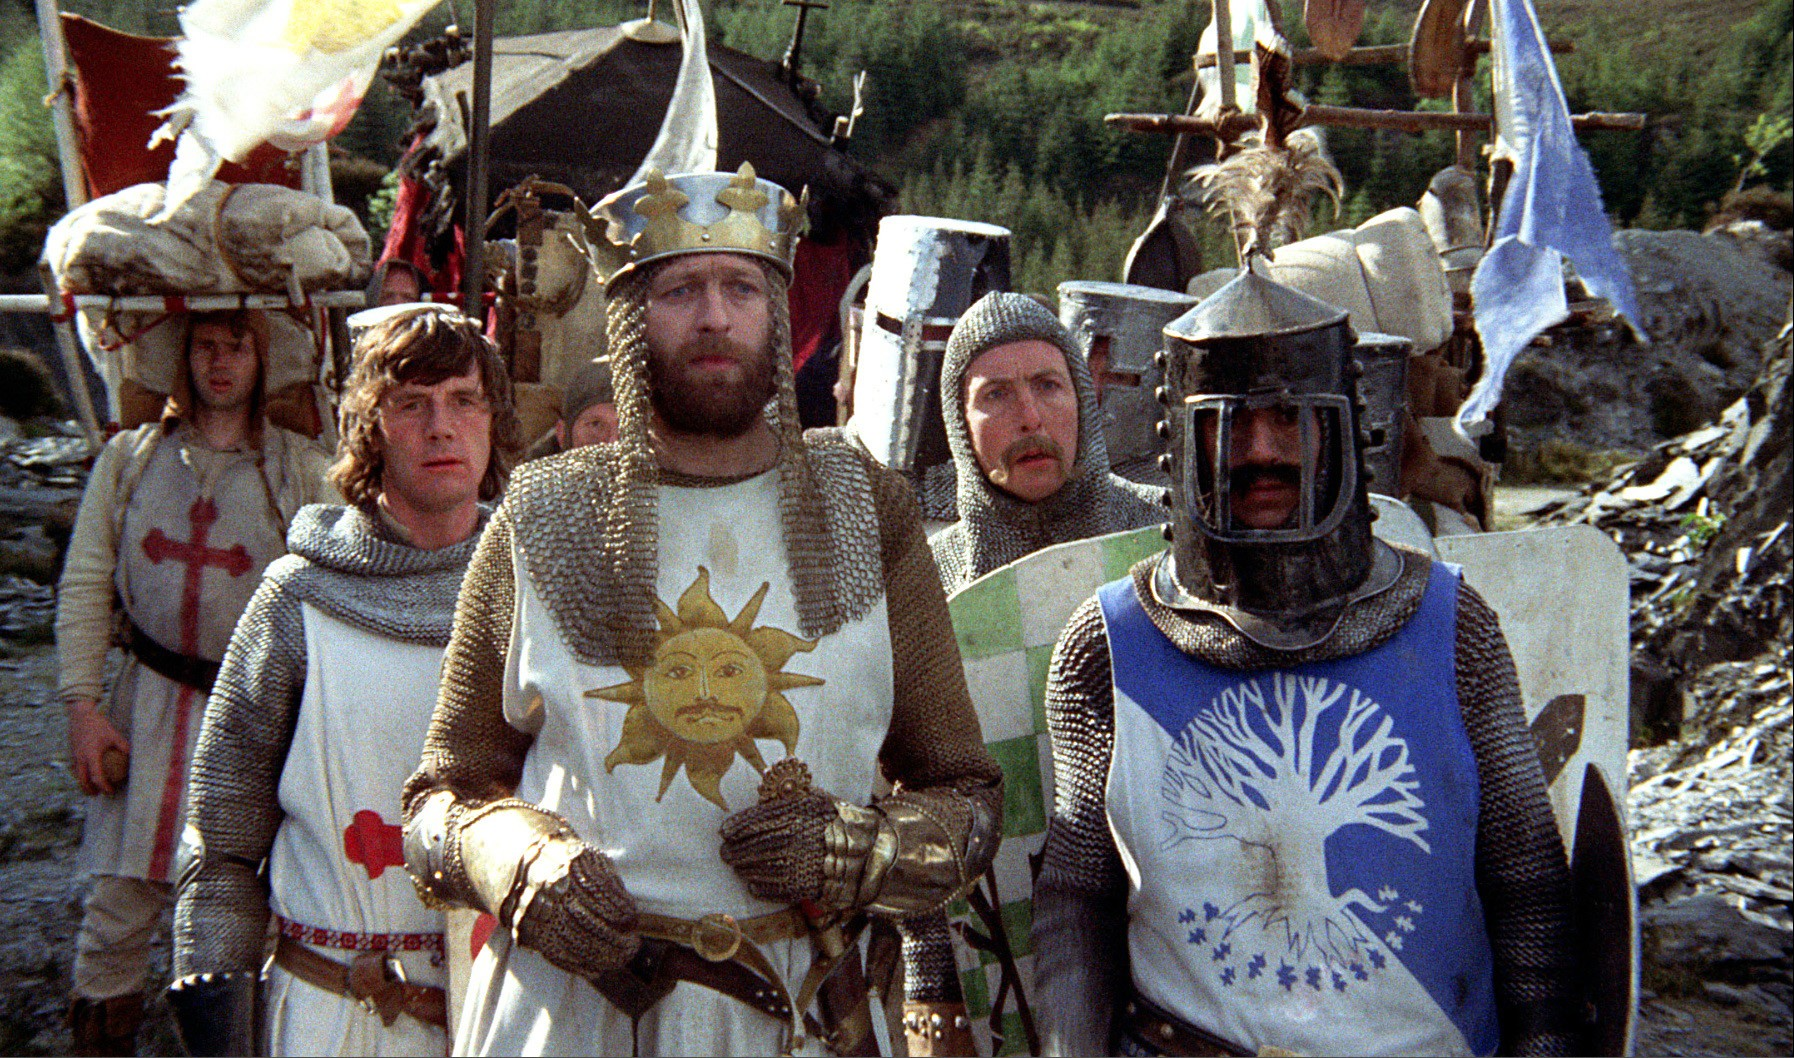 film_monty_python_and_the_holy_grail.jpg